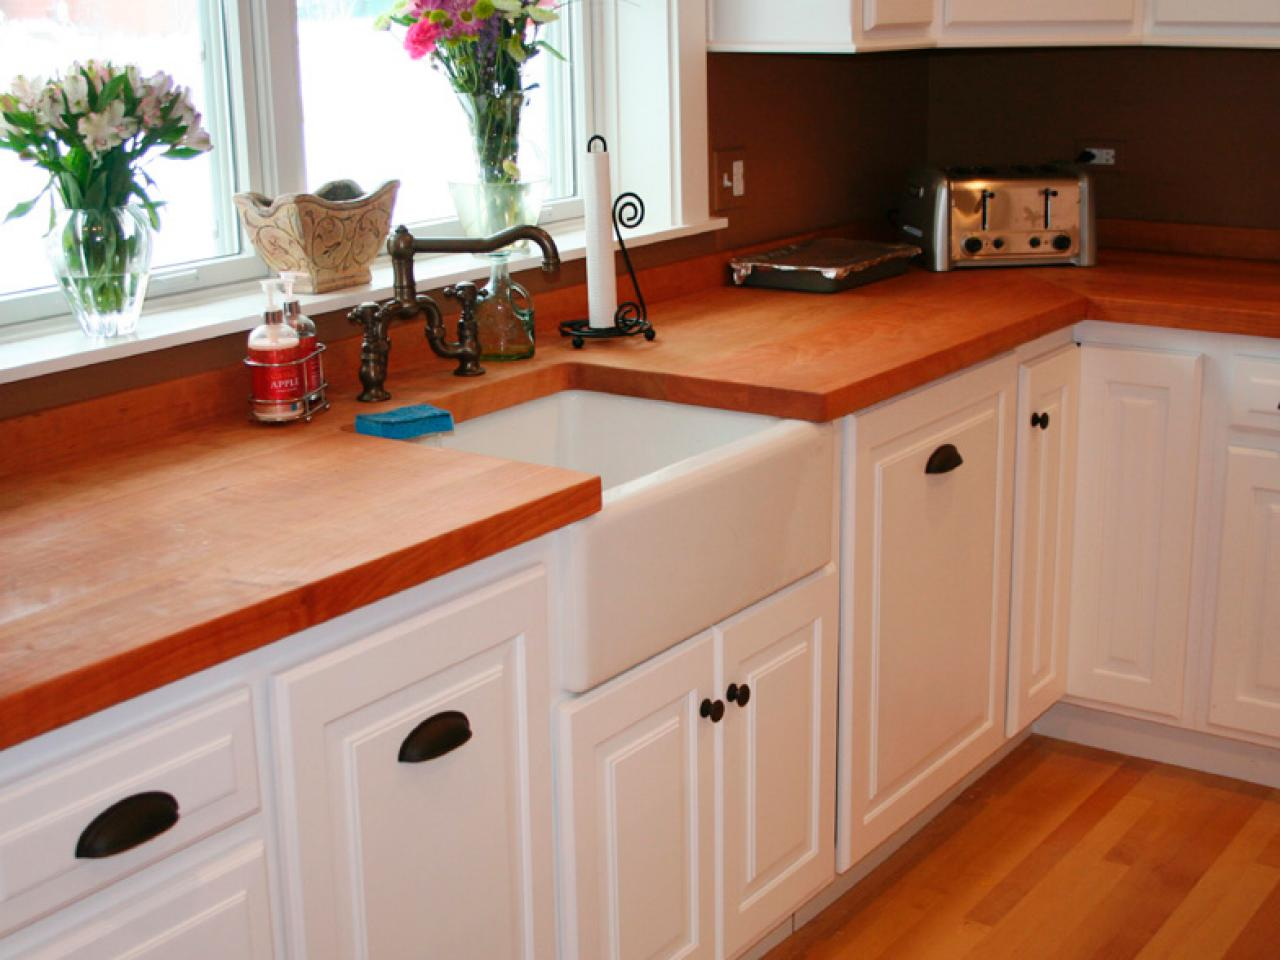 Kitchen Cabinet Pulls: Pictures, Options, Tips & Ideas